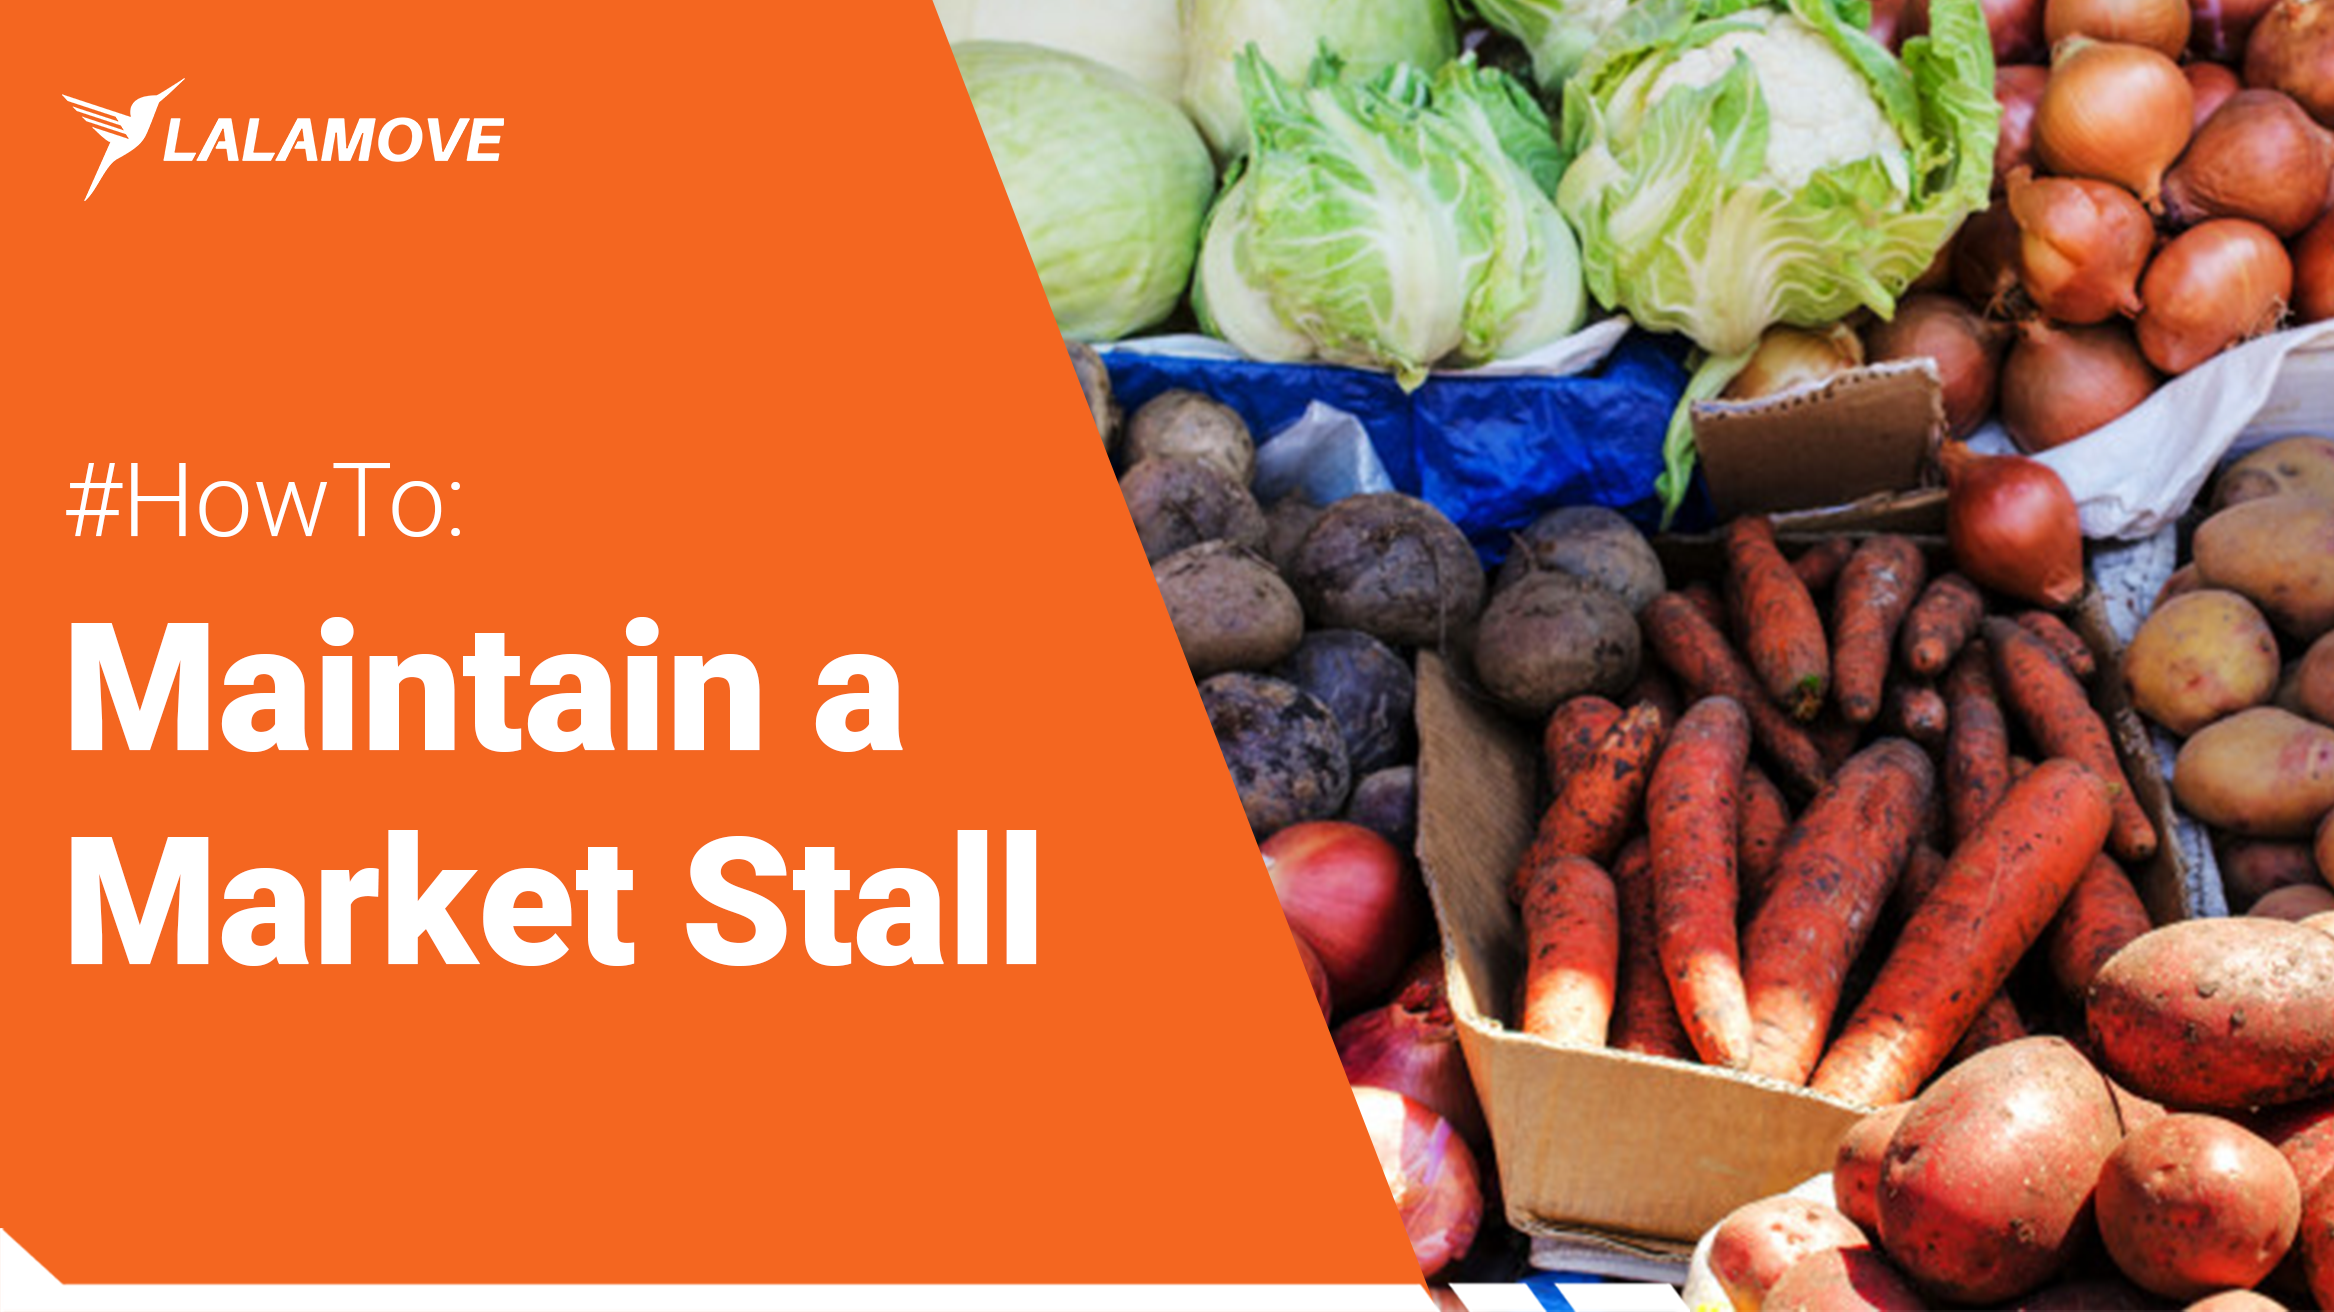 Tips to Maintain a Market Stall